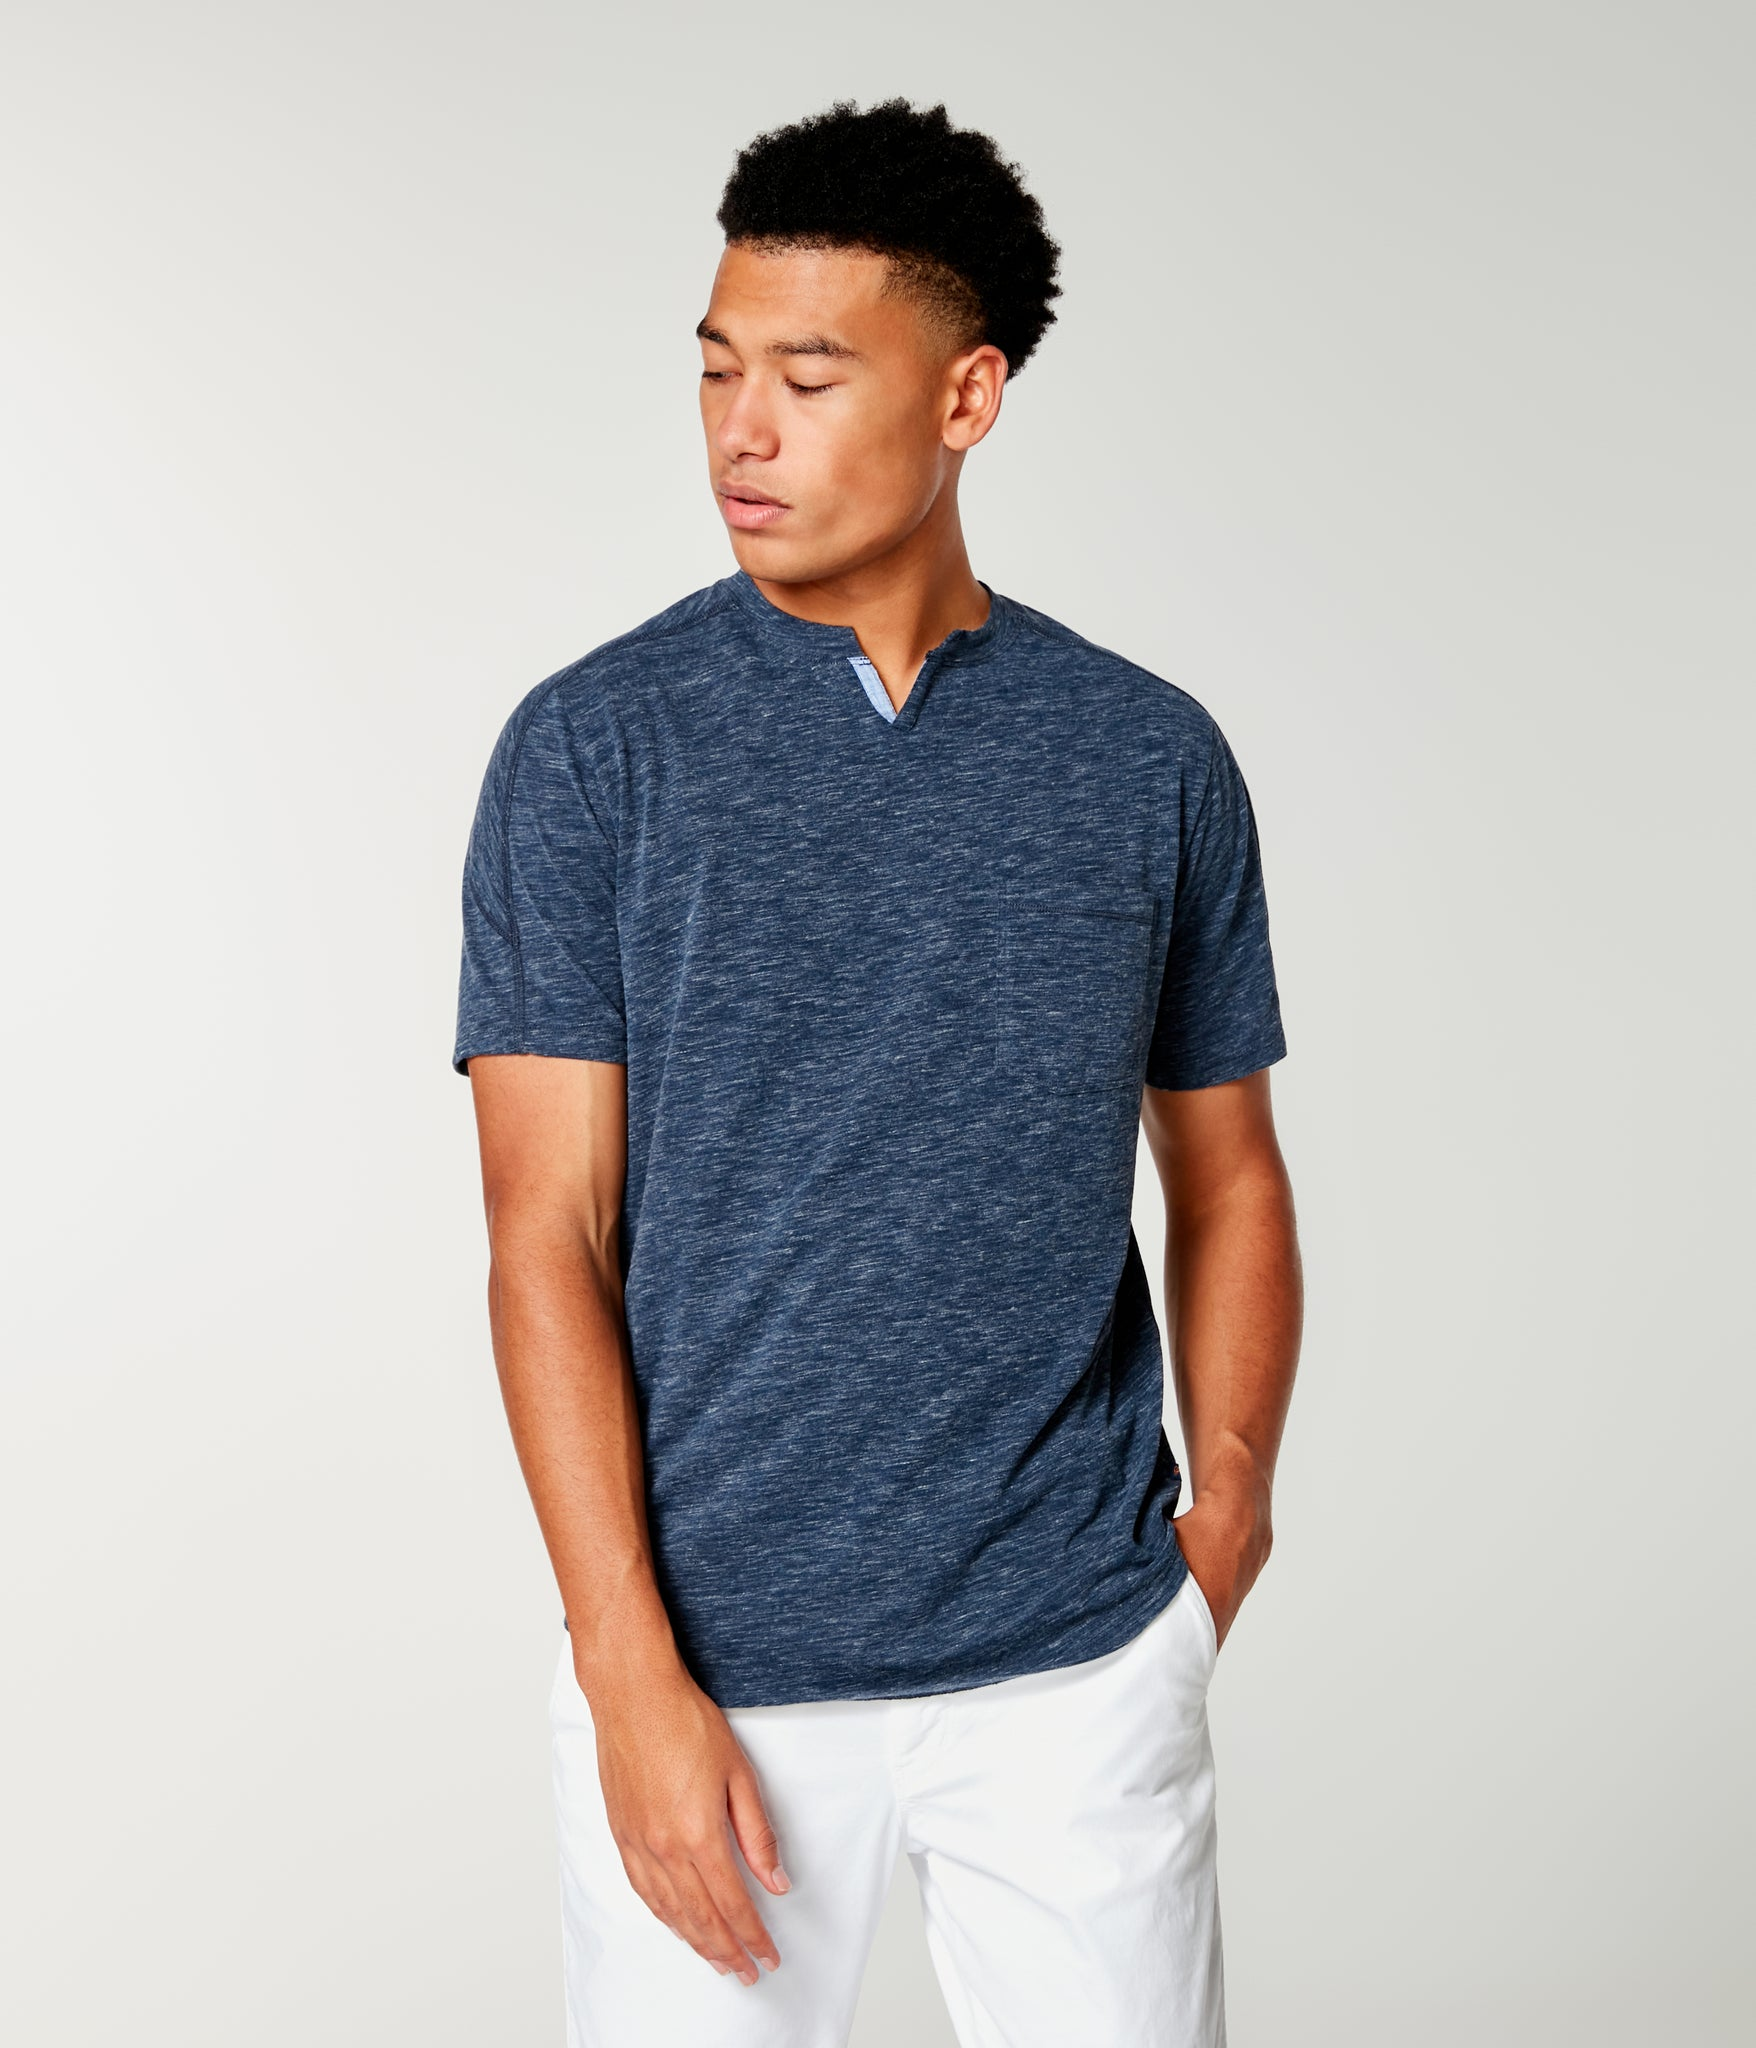 Ss Victory V-Notch Tee - Navy Heather